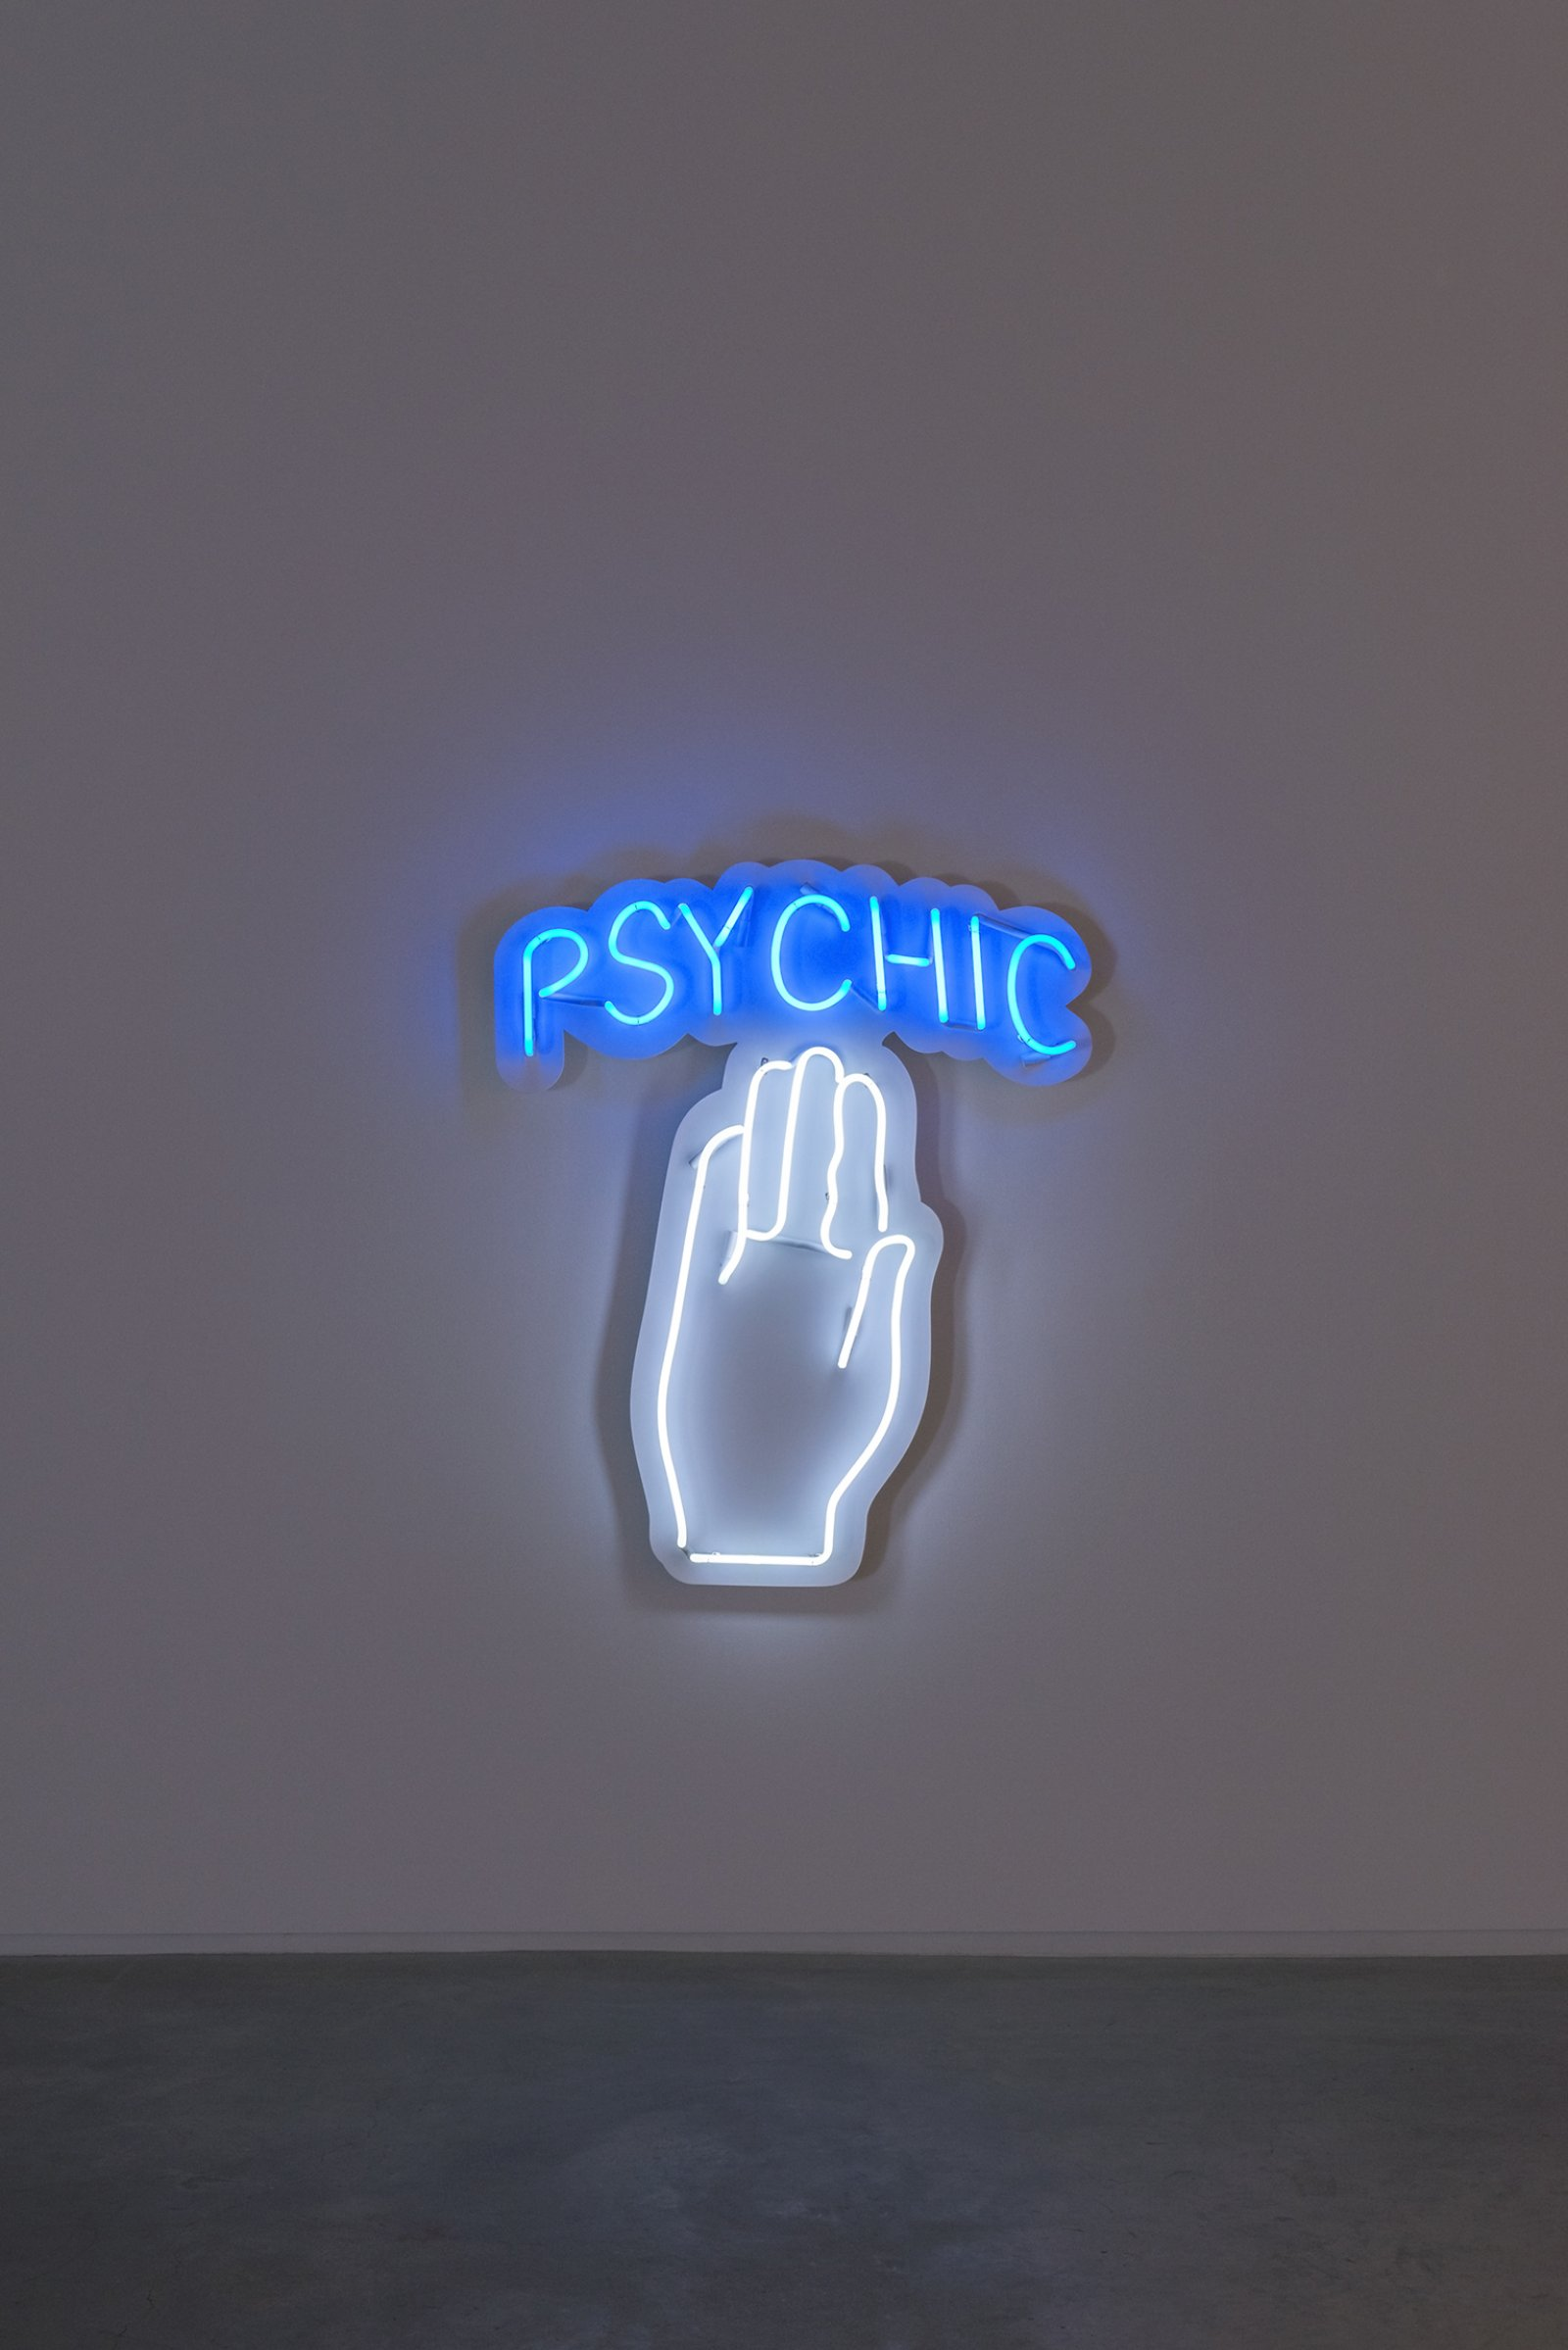 Myfanwy MacLeod, Oracle, 2014, neon, 53 x 43 x 5 in. (135 x 109 x 13 cm) by Myfanwy MacLeod